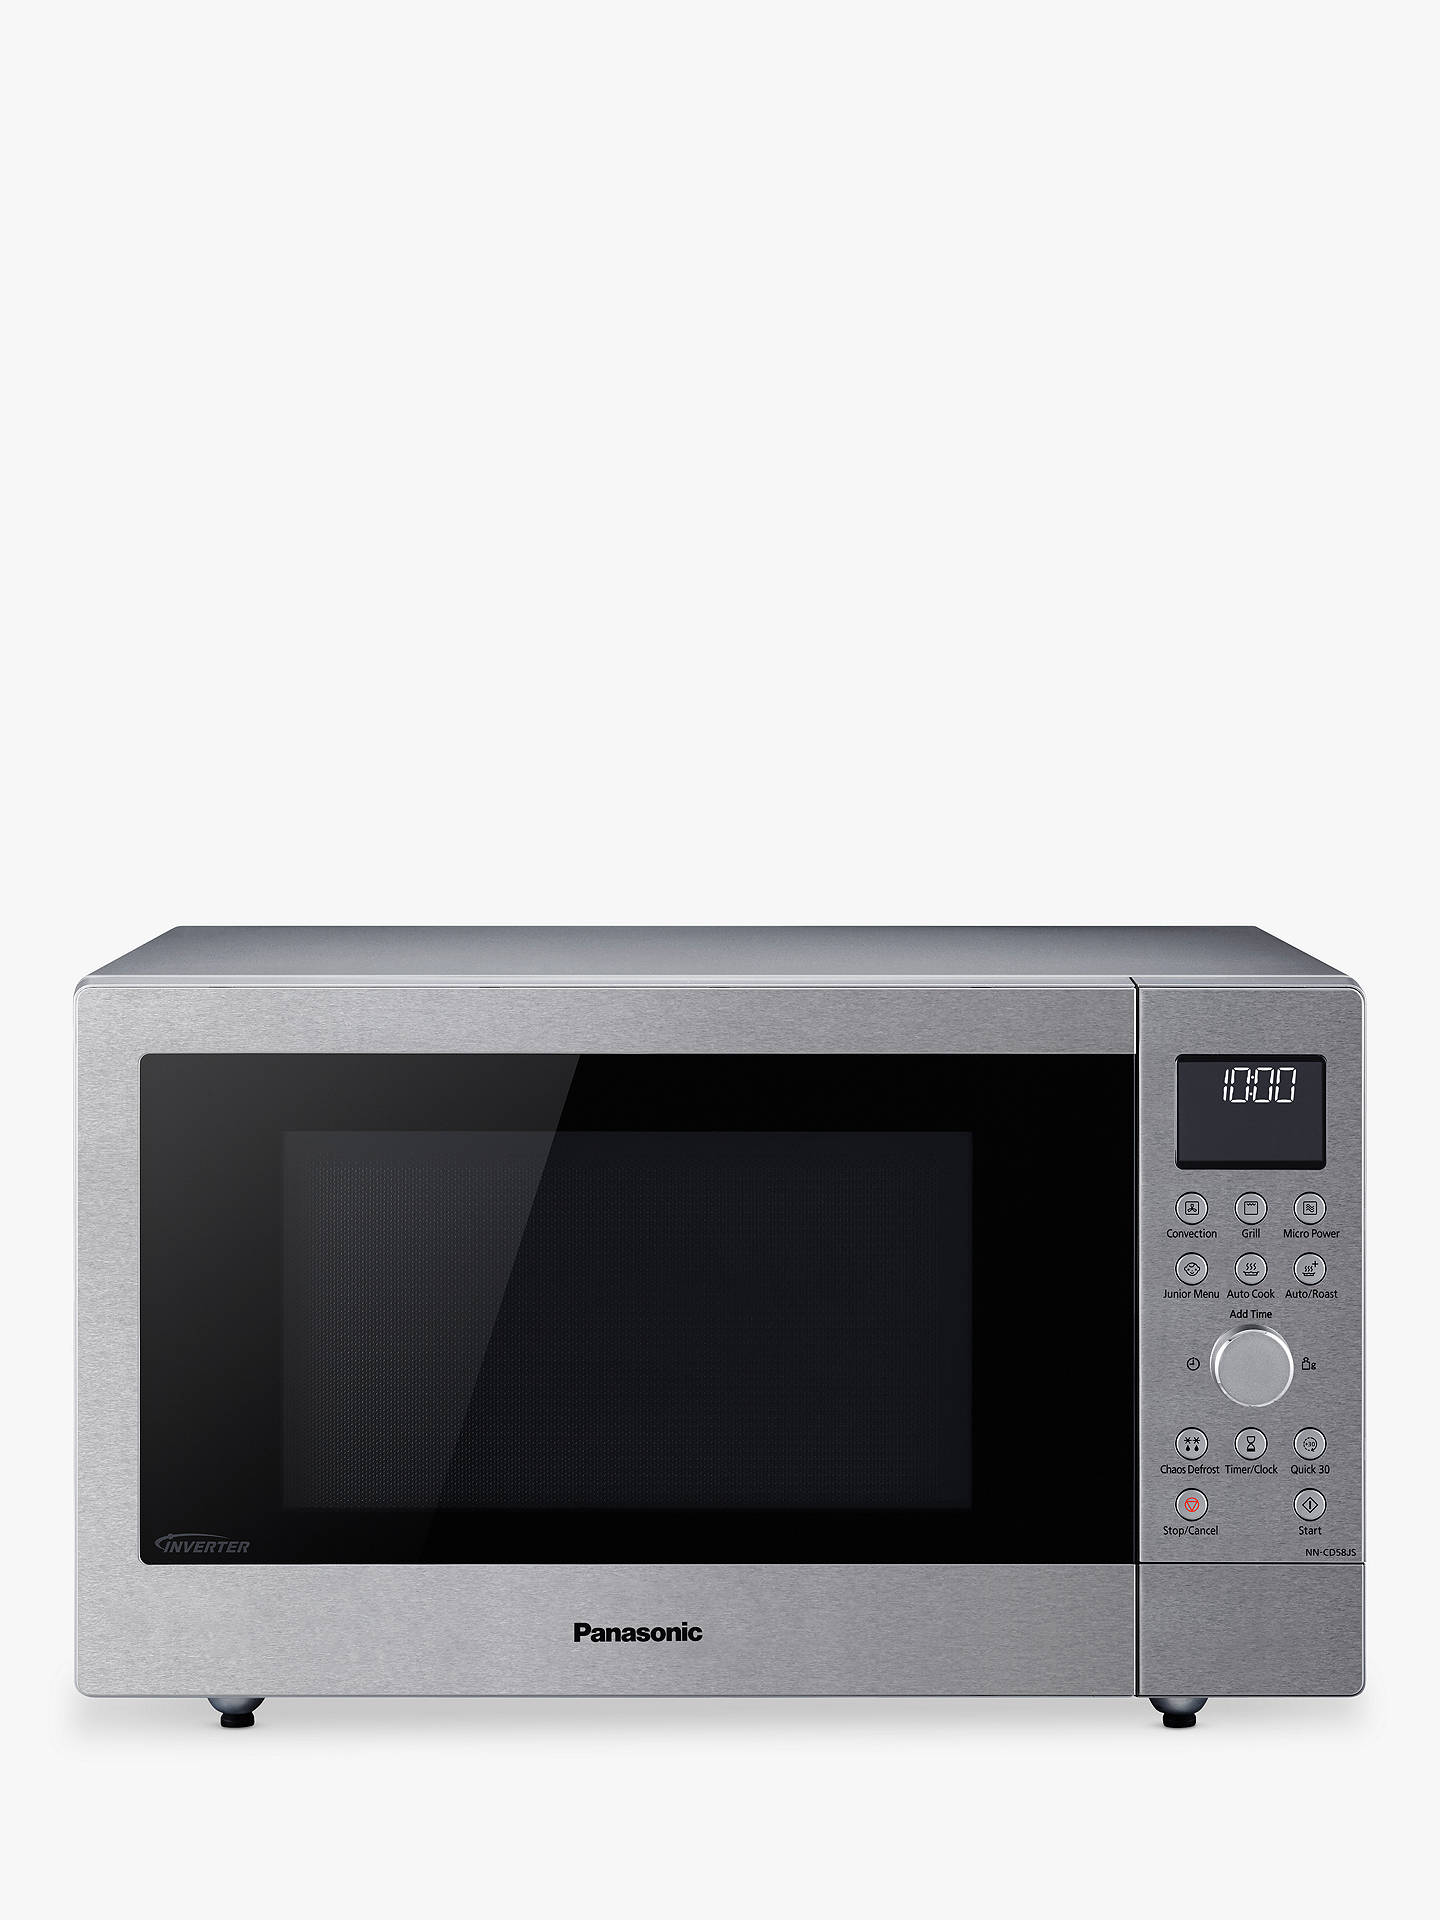 Panasonic Nn Cd58jsbpq Combination Microwave Oven Stainless Steel Online At Johnlewis